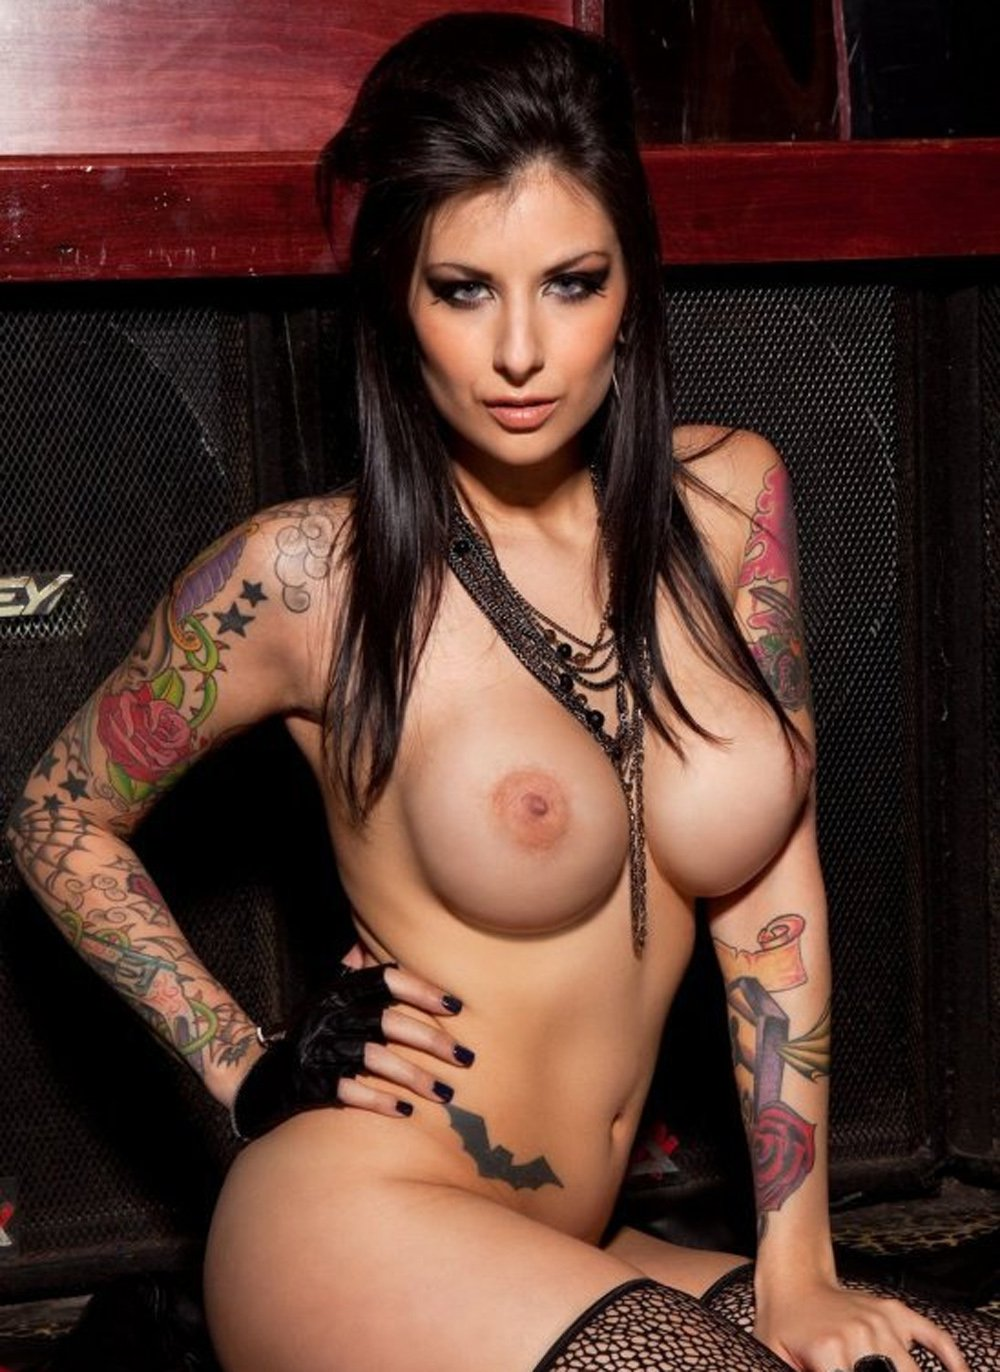 playboy-tattoos-on-the-abdomen-youngest-nudes-the